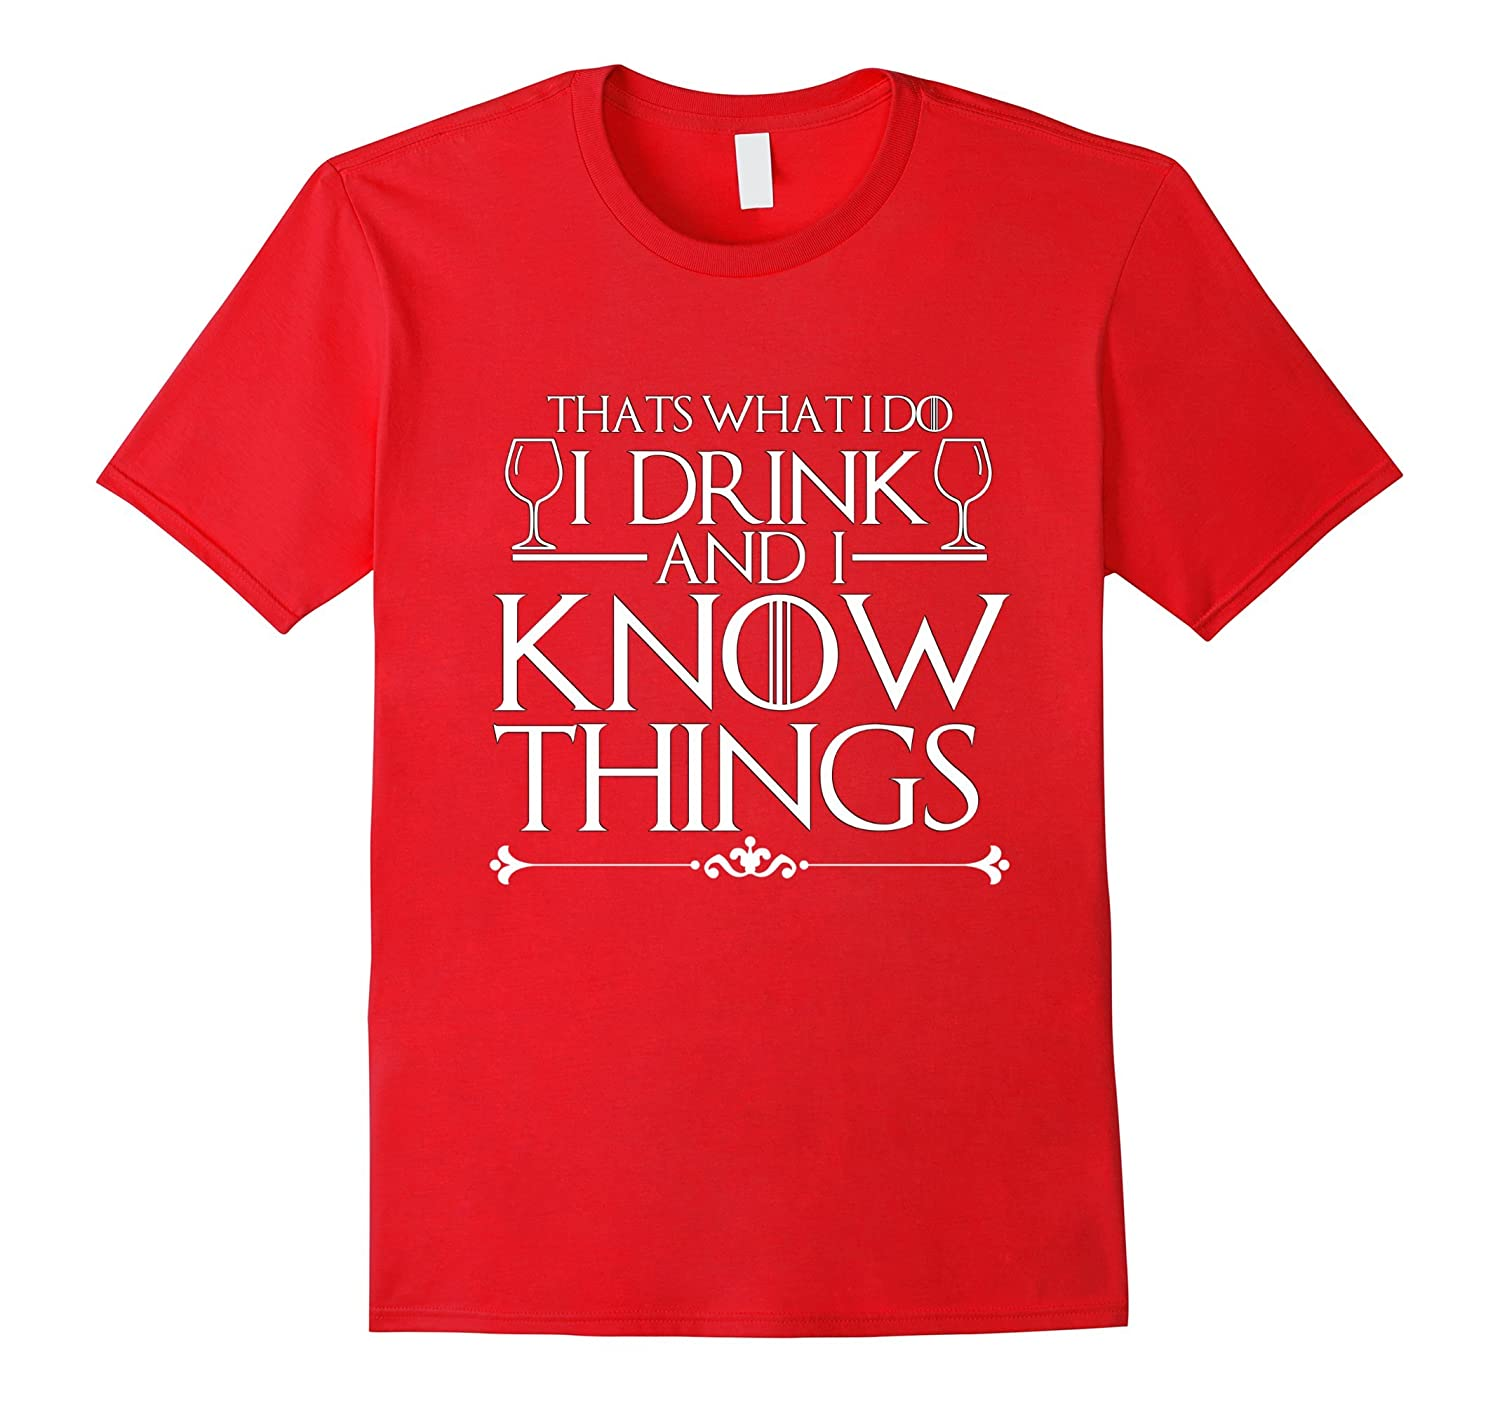 I Drink And I Know Things Funny T-Shirt Drinking What I Do-CL